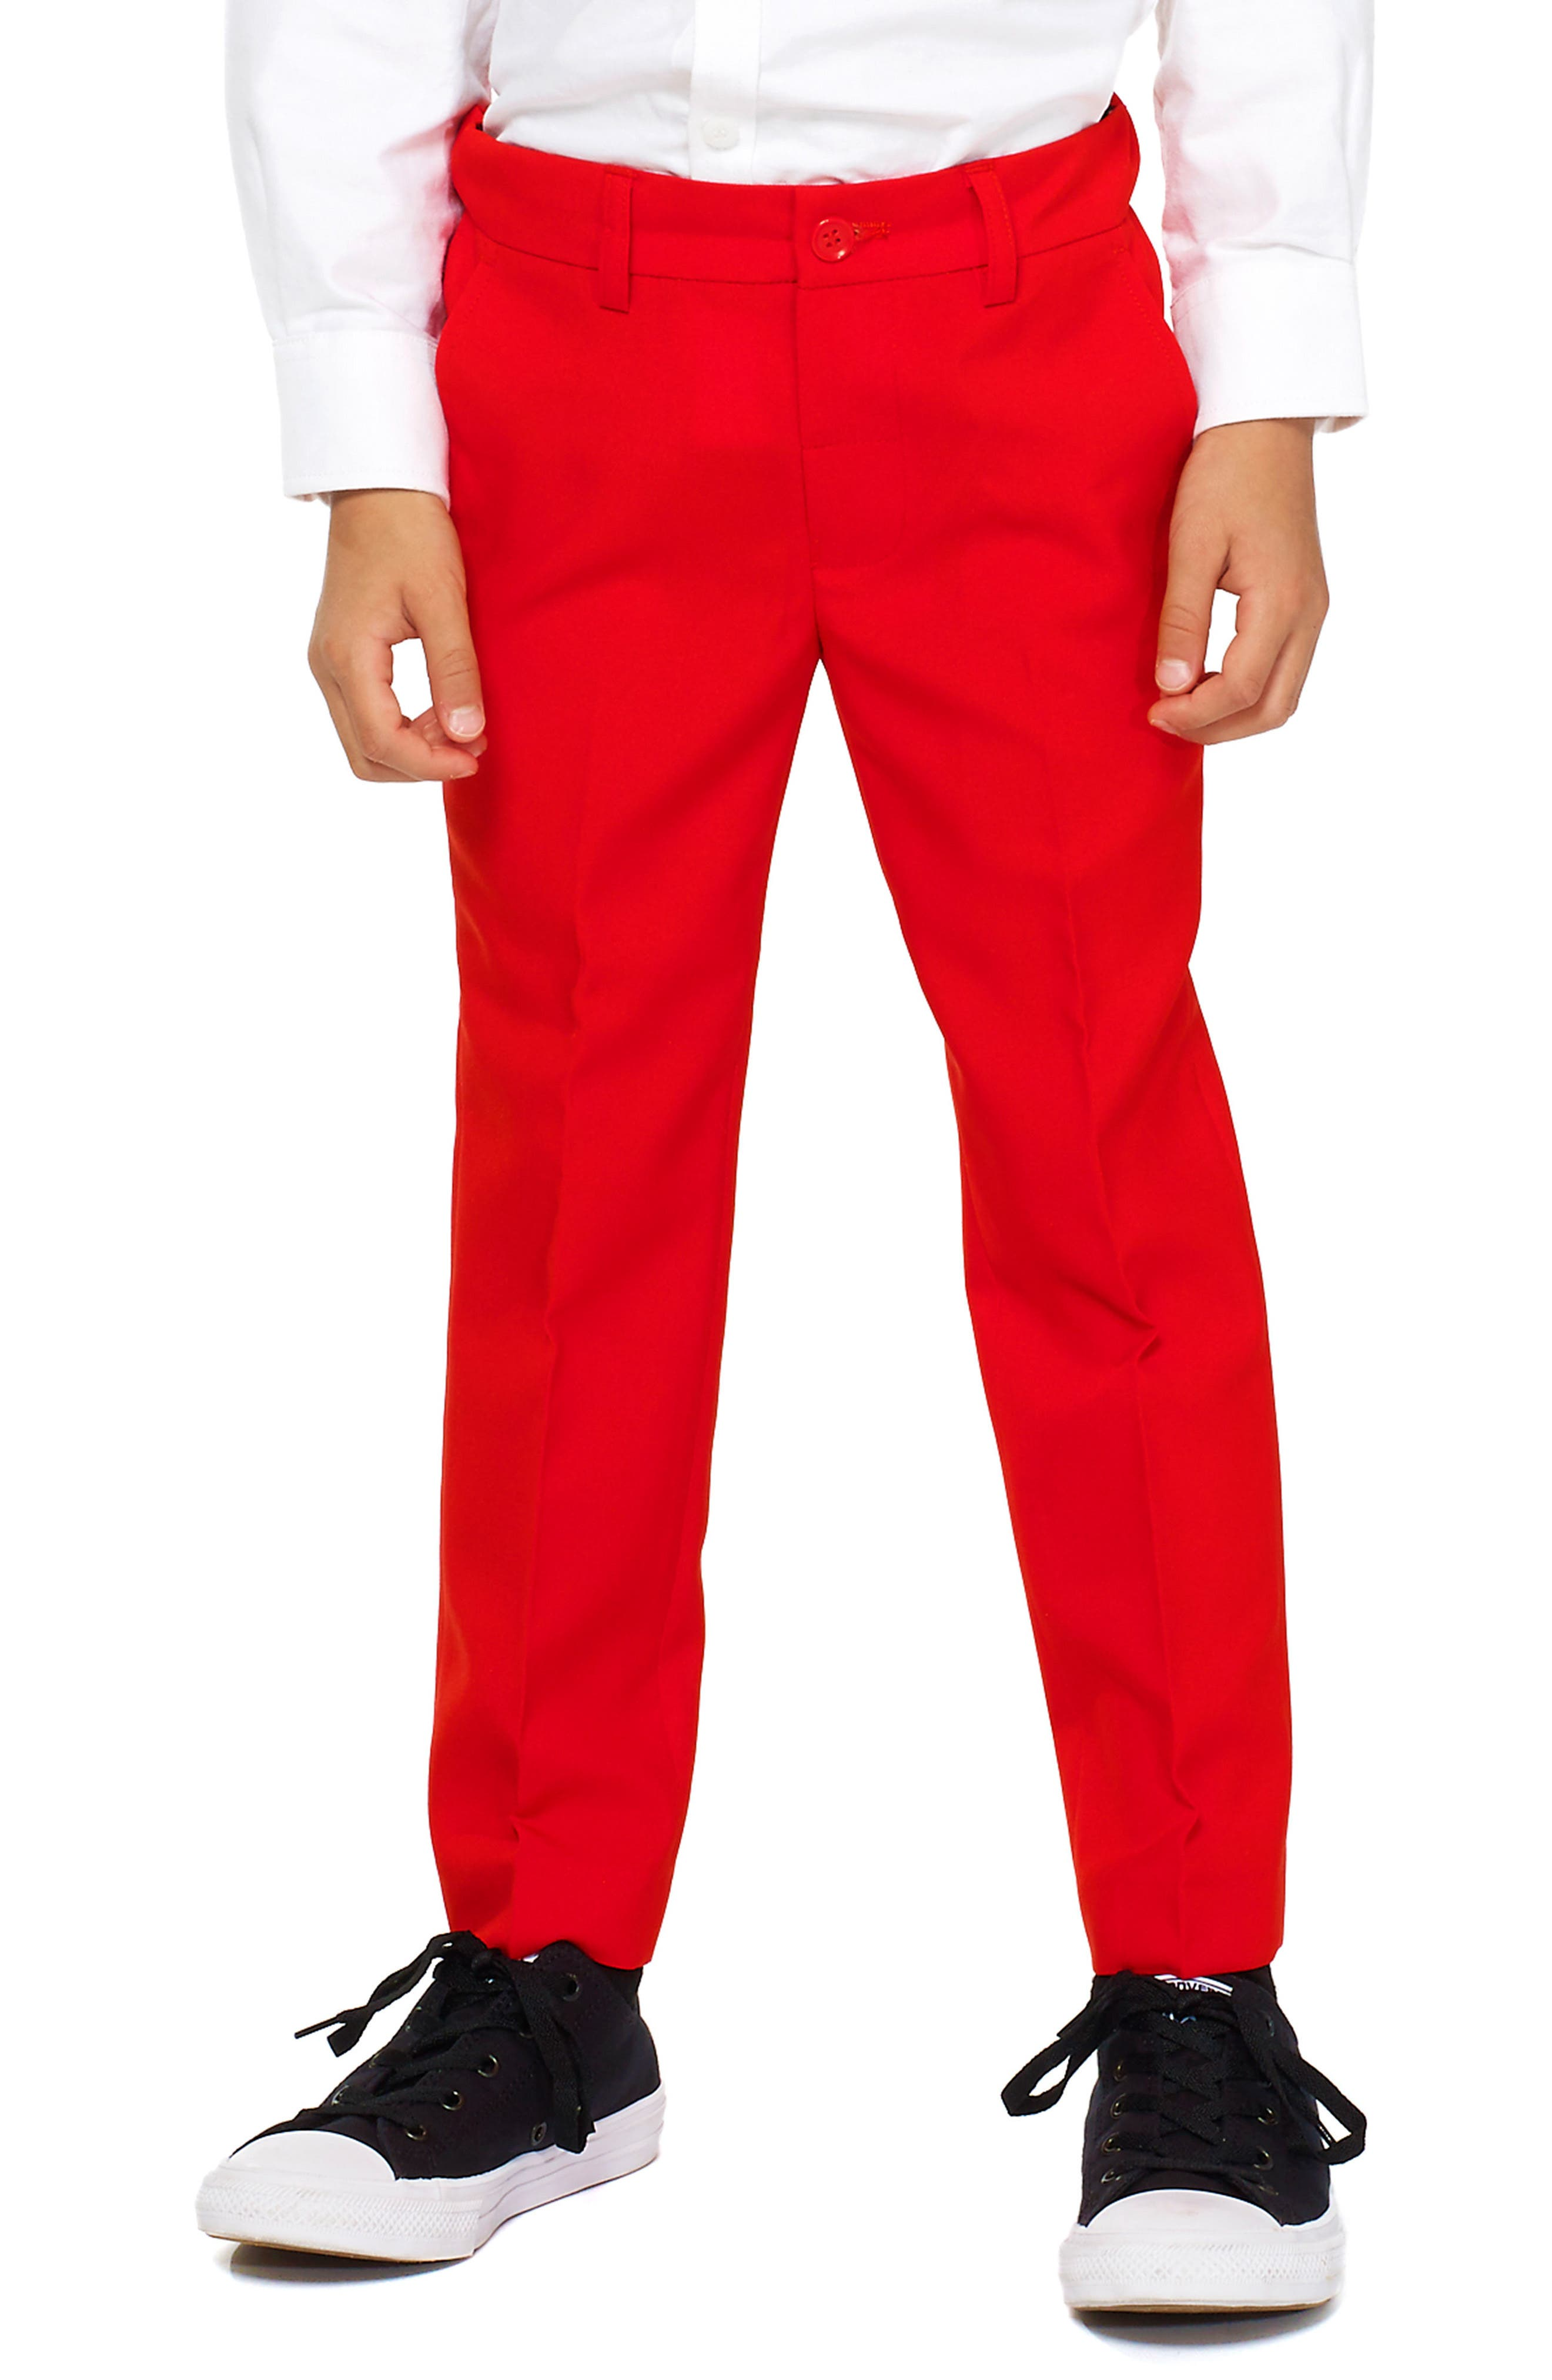 Oppo Red Devil Two-Piece Suit with Tie,                             Alternate thumbnail 4, color,                             Red